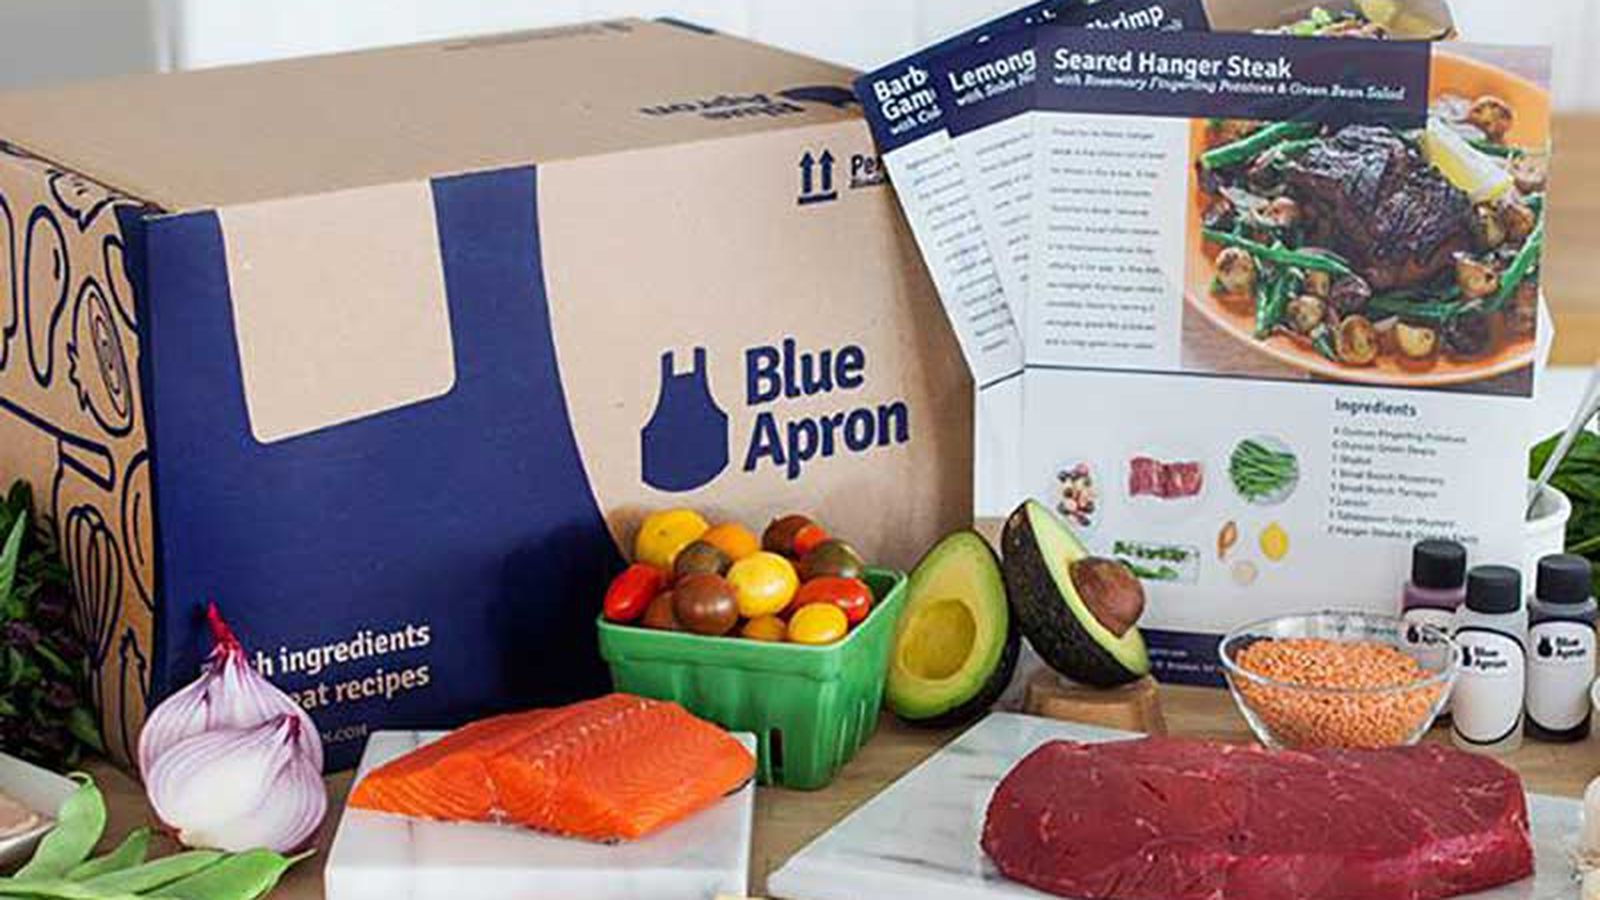 Blue apron austin tx